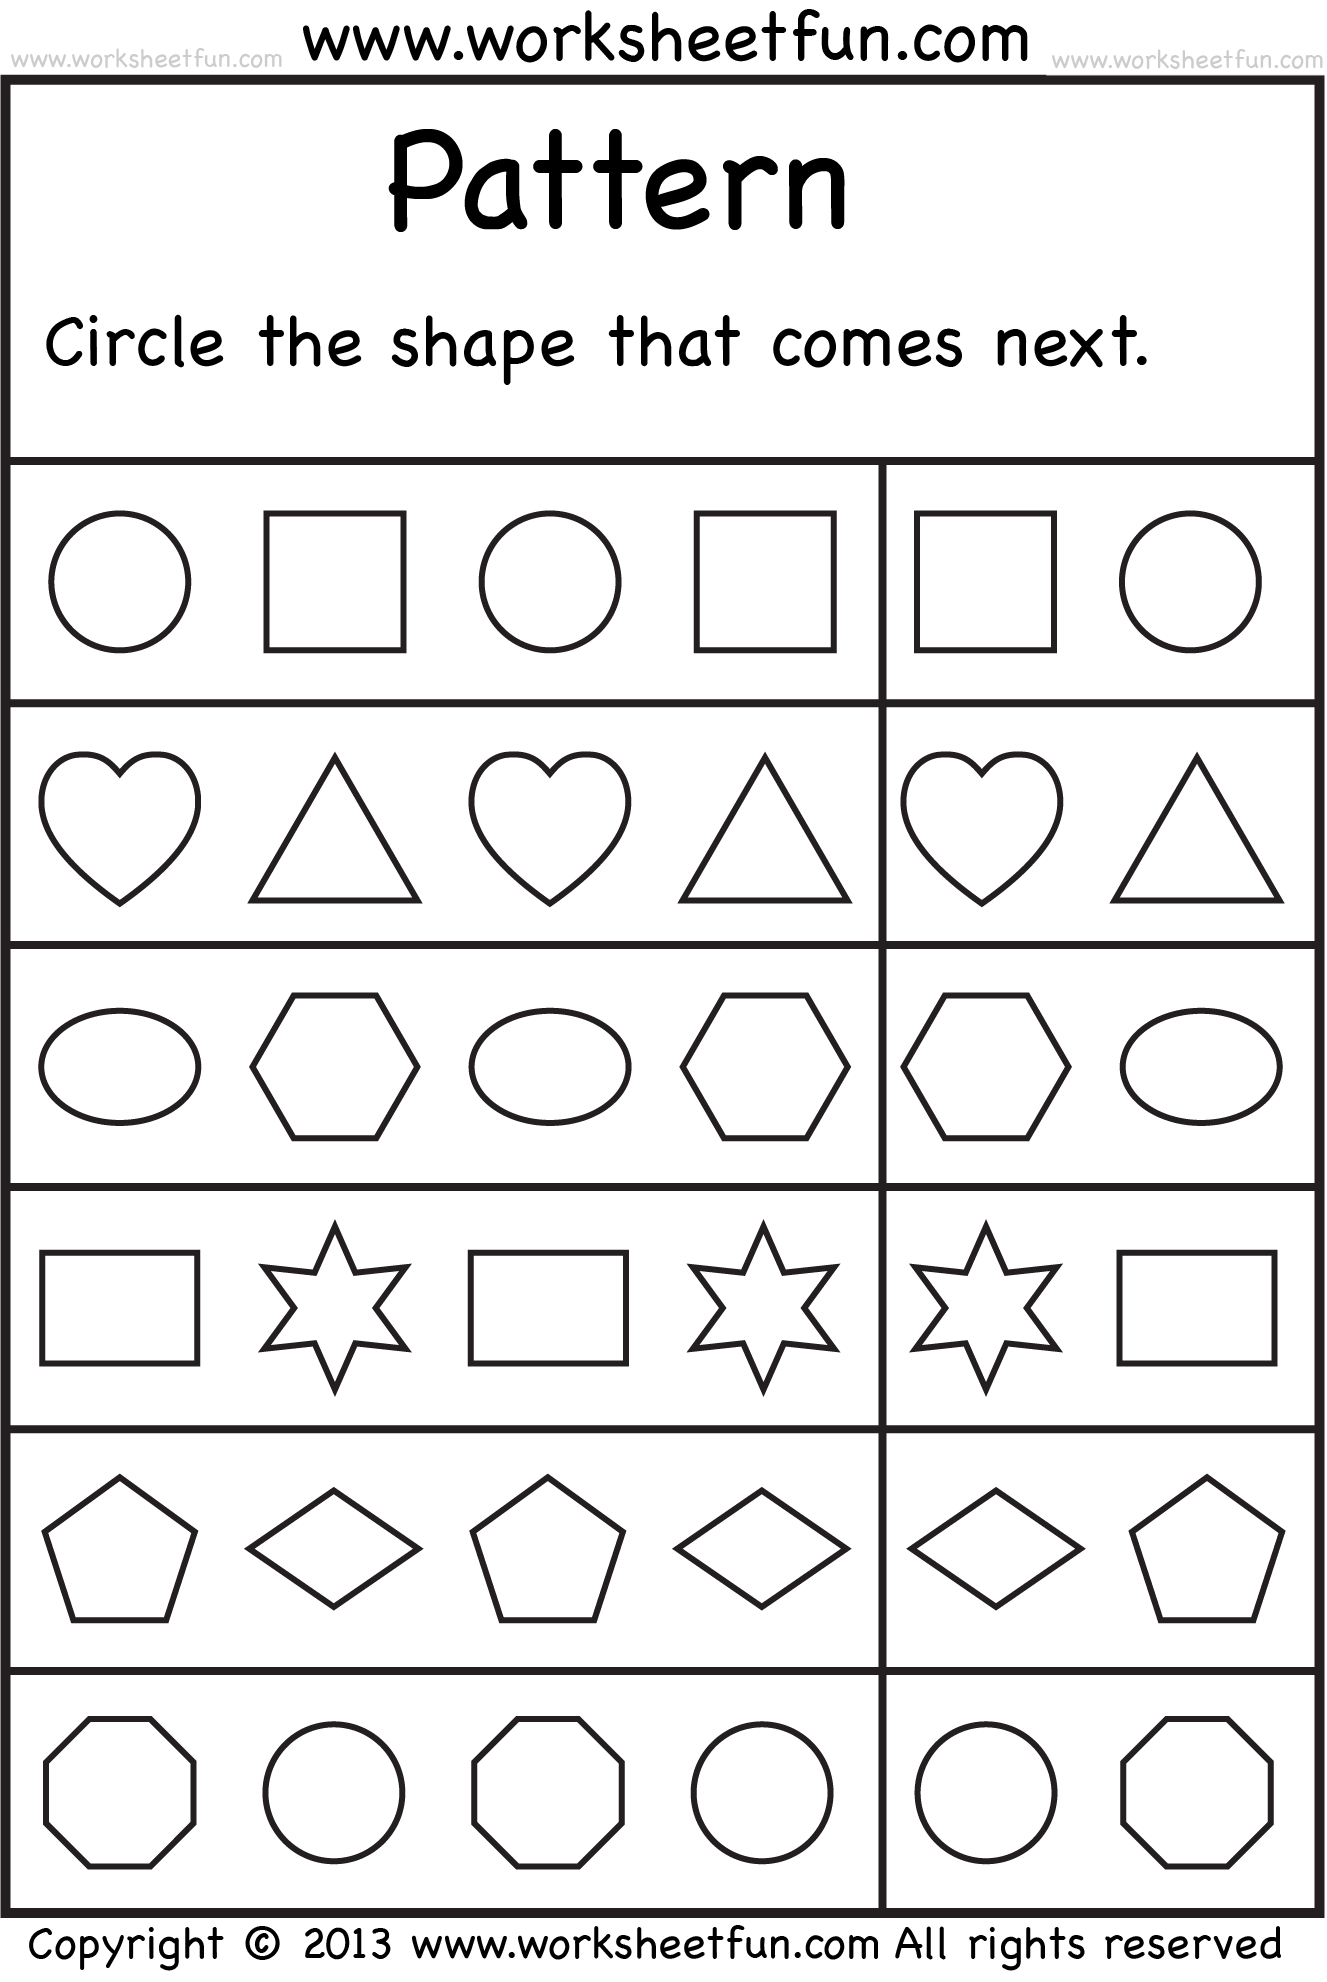 Proatmealus  Sweet  Images About School Worksheets On Pinterest  Number Words  With Licious  Images About School Worksheets On Pinterest  Number Words Alphabet Worksheets And Free Printable Kindergarten Worksheets With Alluring  X Tables Worksheet Also Number Recognition Worksheets For Preschool In Addition Printable Italian Worksheets And Habitats Worksheets Ks As Well As Math Makes Sense  Worksheets Additionally Montessori Worksheets For Preschoolers From Pinterestcom With Proatmealus  Licious  Images About School Worksheets On Pinterest  Number Words  With Alluring  Images About School Worksheets On Pinterest  Number Words Alphabet Worksheets And Free Printable Kindergarten Worksheets And Sweet  X Tables Worksheet Also Number Recognition Worksheets For Preschool In Addition Printable Italian Worksheets From Pinterestcom